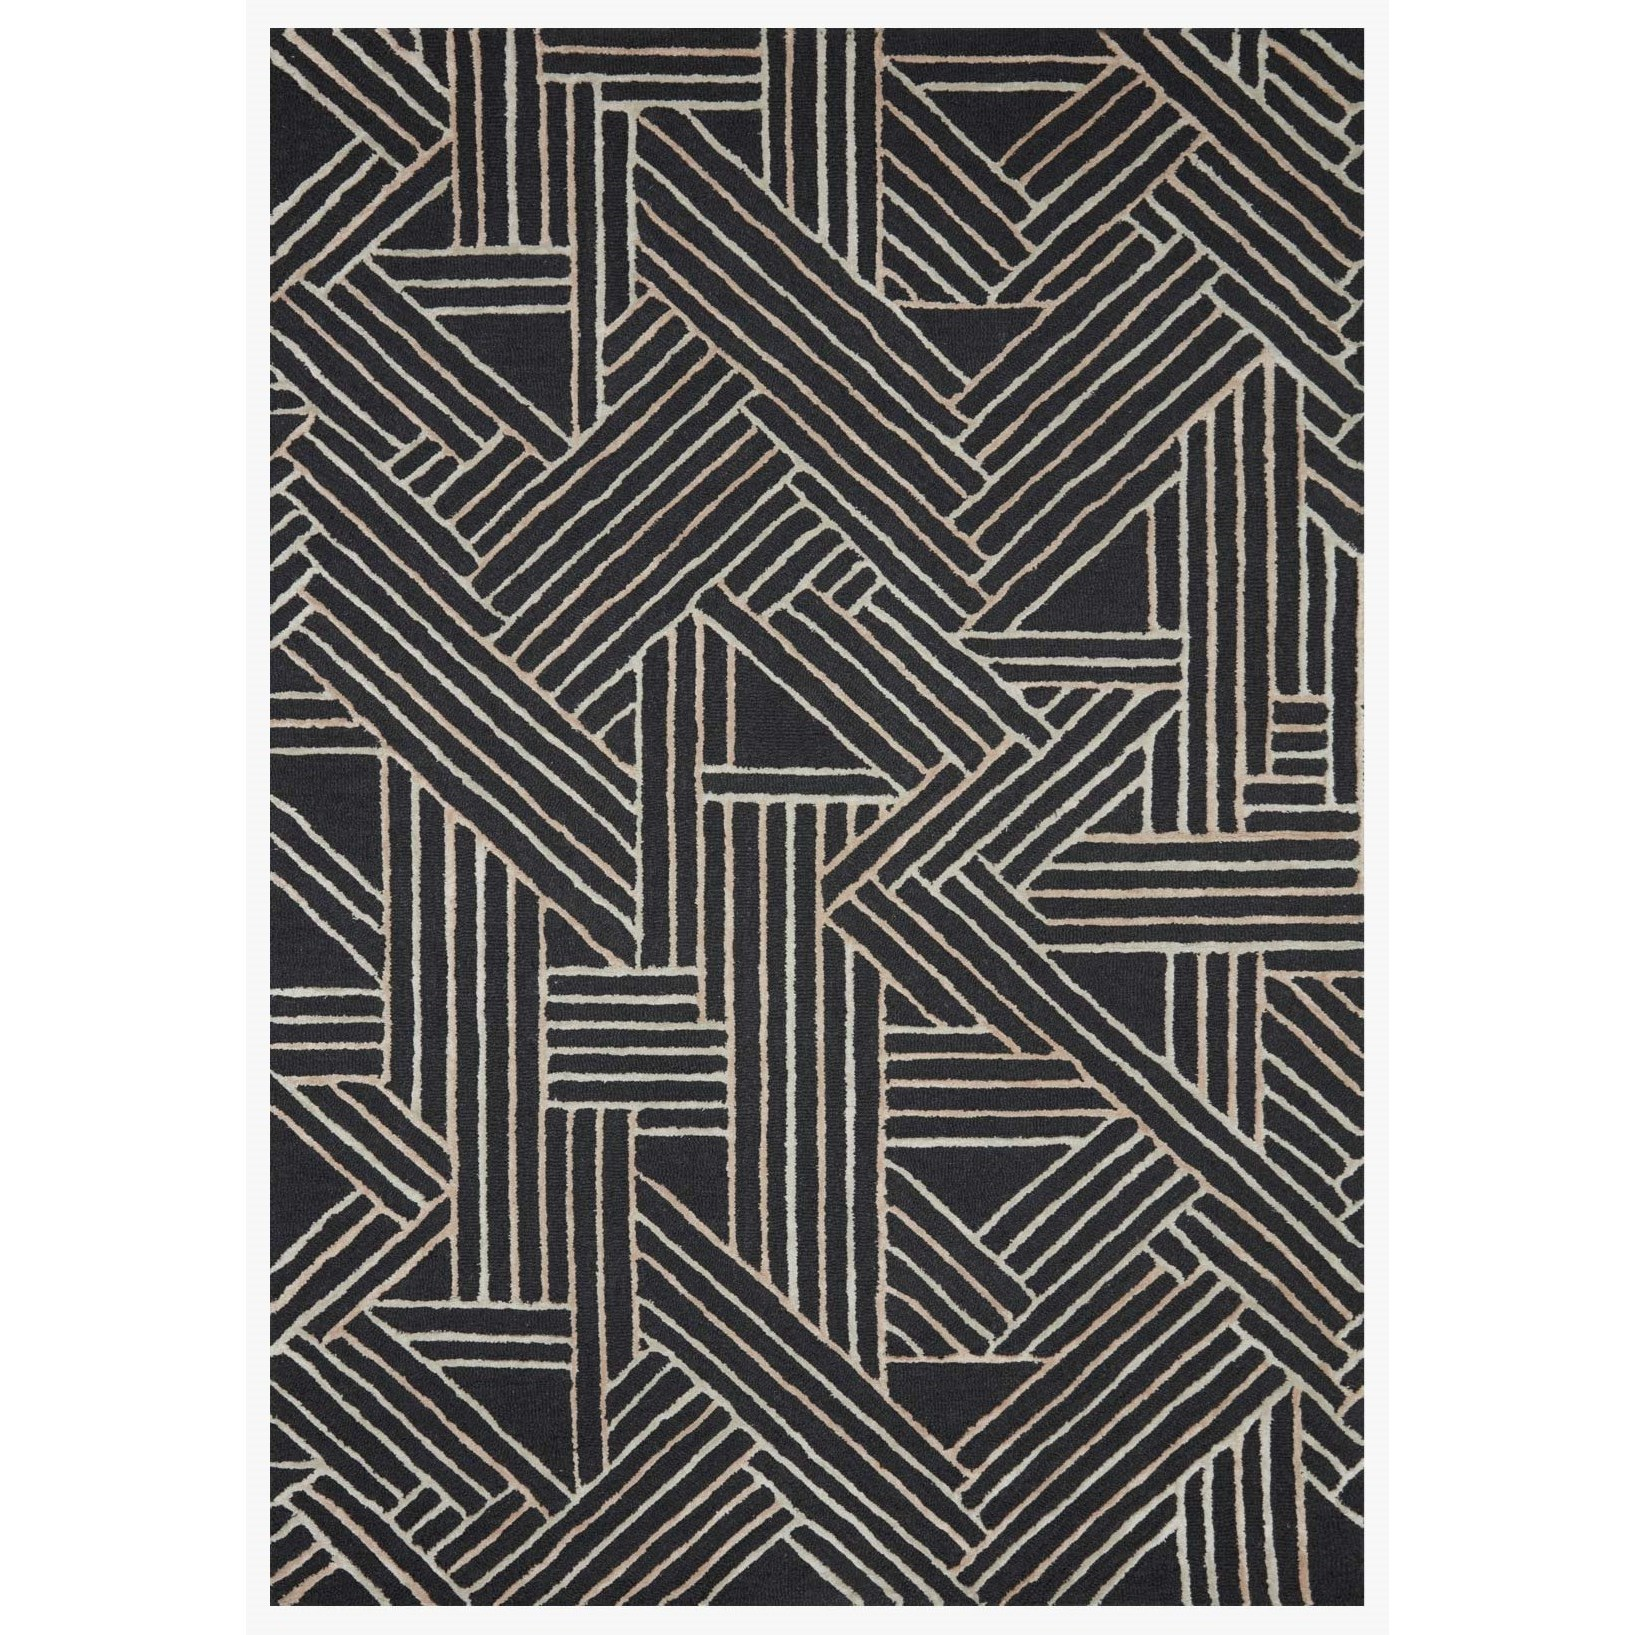 """Verve 3'6"""" x 5'6"""" Charcoal / Neutral Rug by Loloi Rugs at Virginia Furniture Market"""